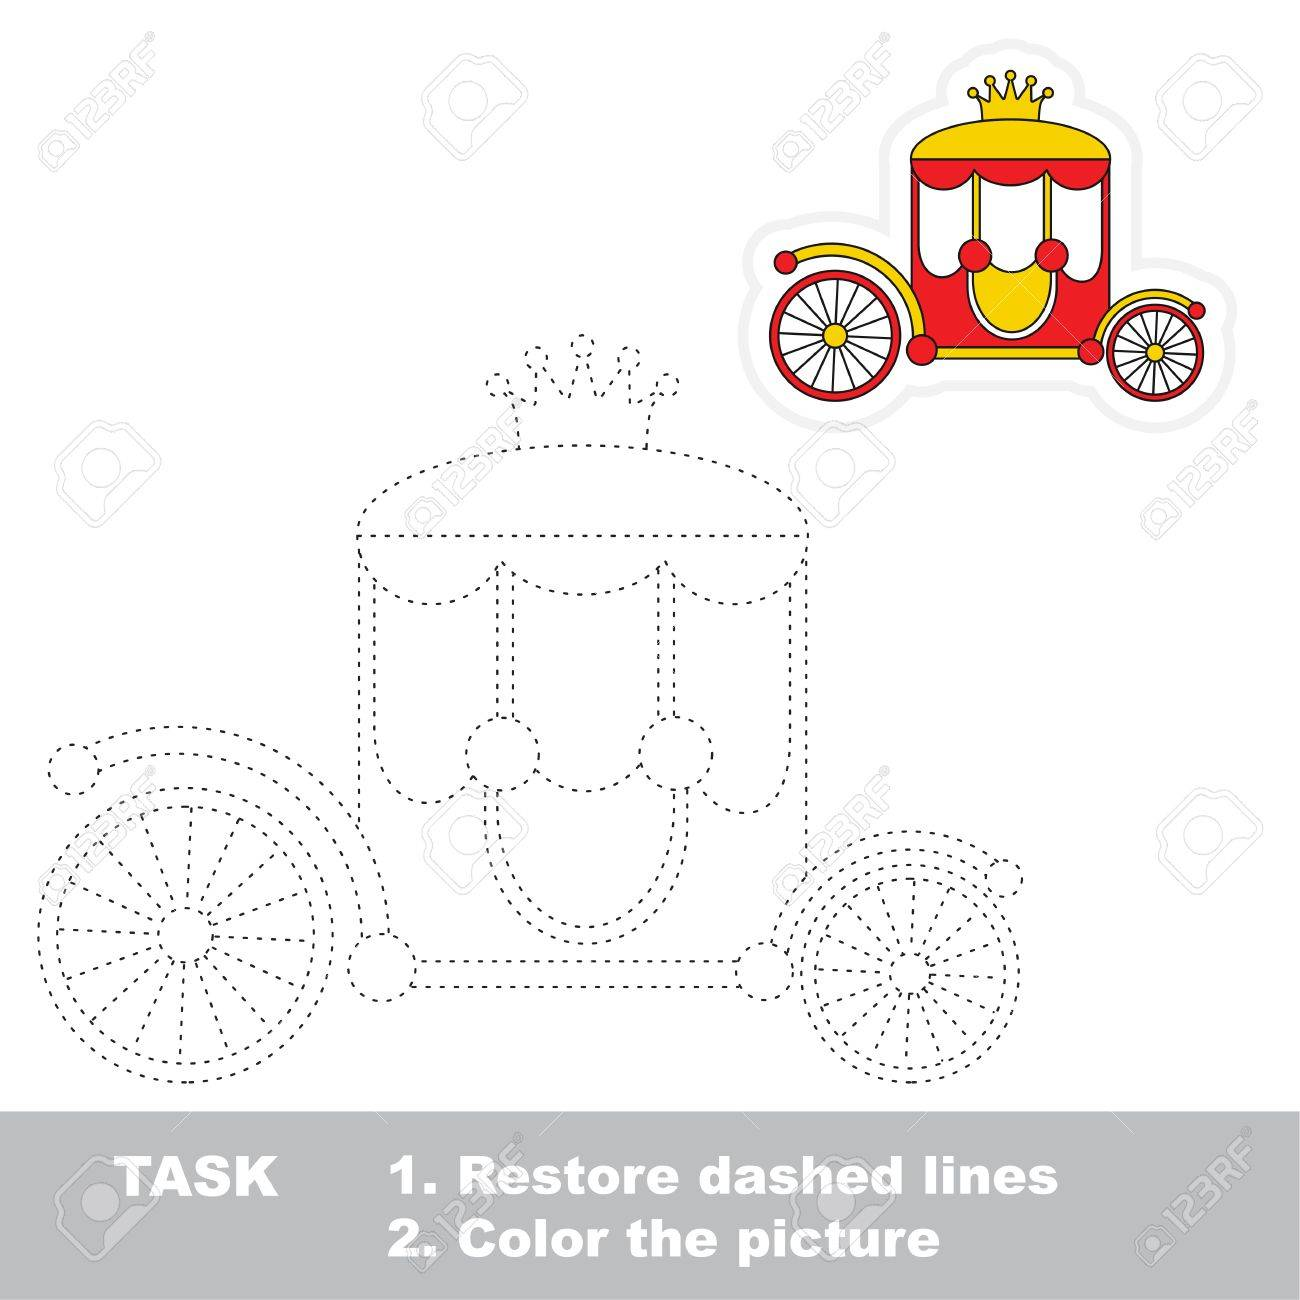 chariot dot to dot educational tracing game for preschool kids